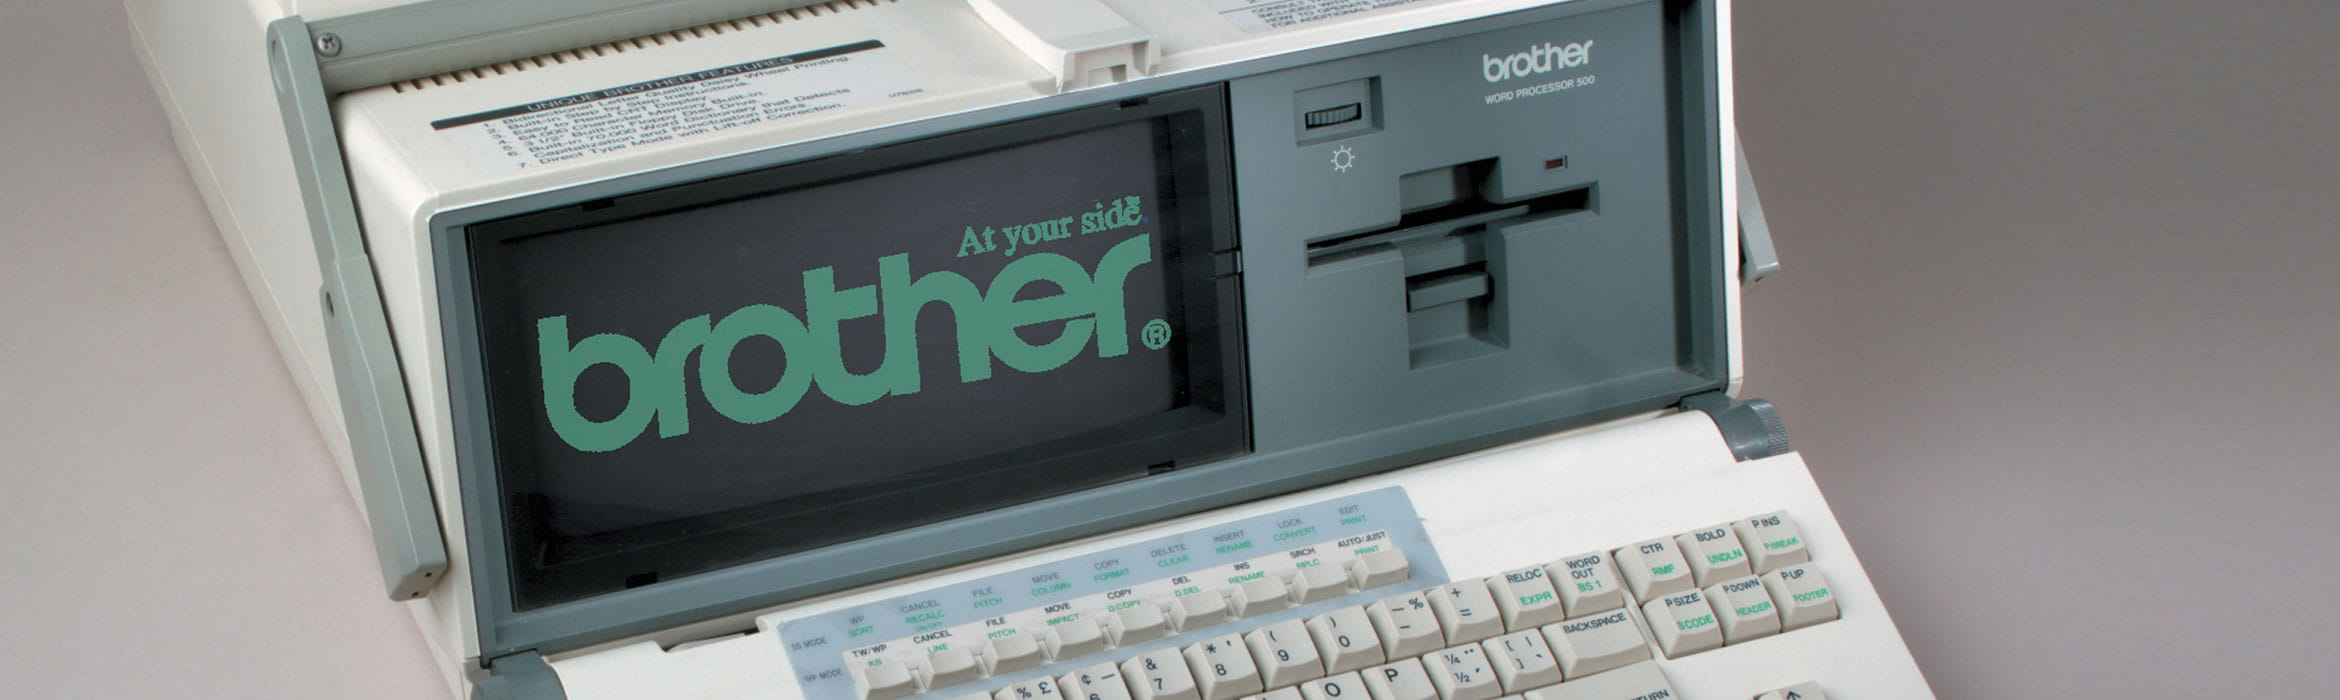 brother-at-your-side-history-product